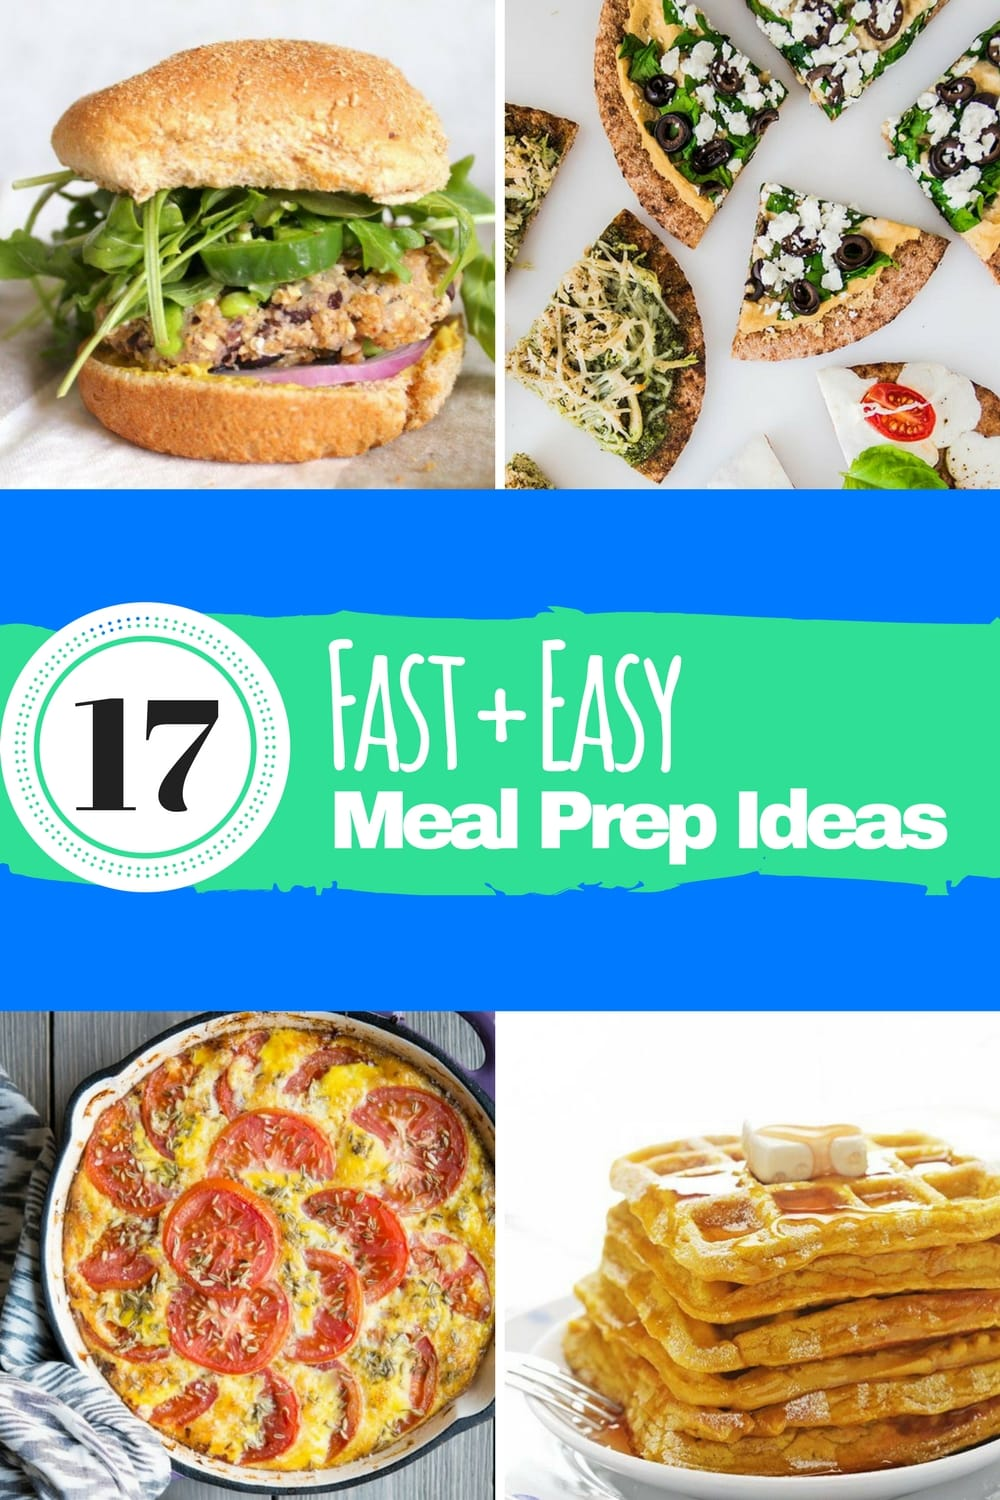 I have been trying to figure out how to meal prep for work. Lots of great ideas here!!